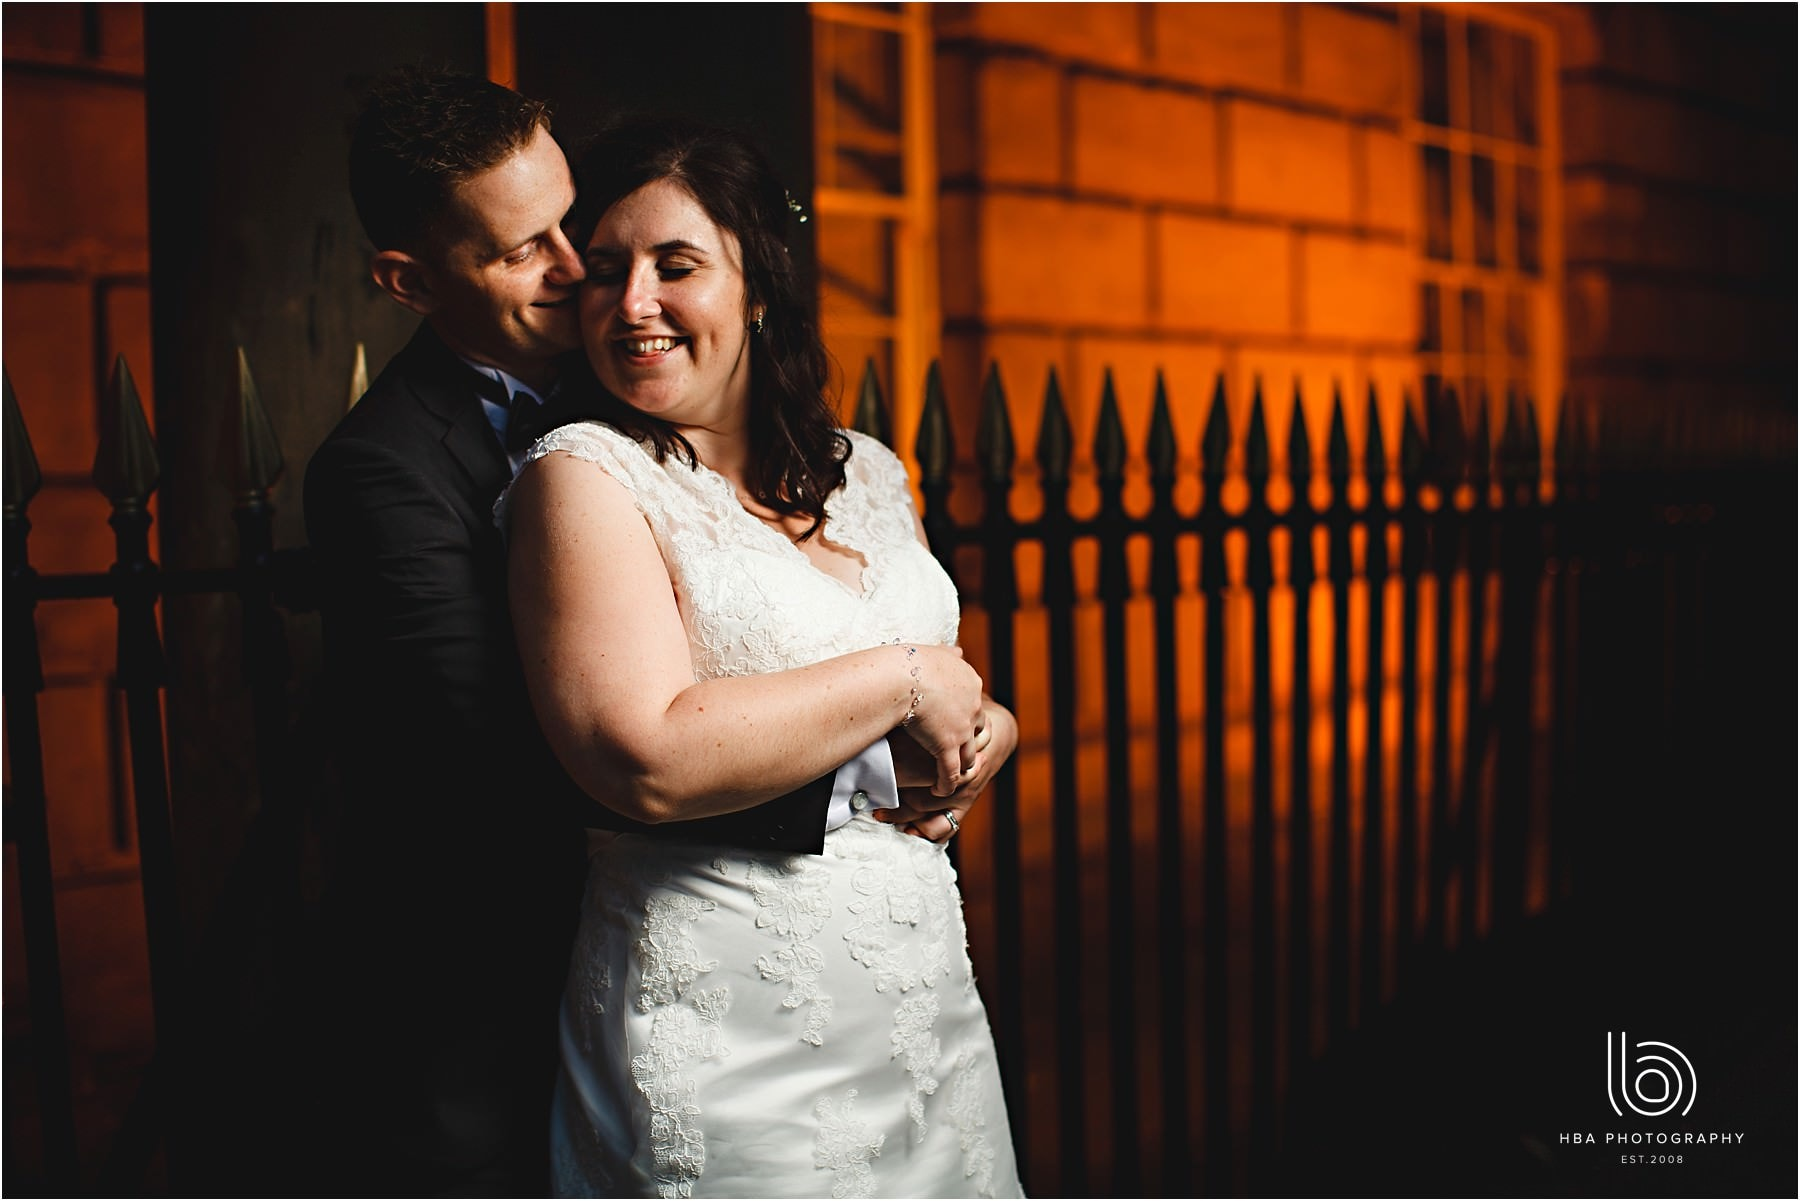 the bride and groom stood outside of the hotel in orange light